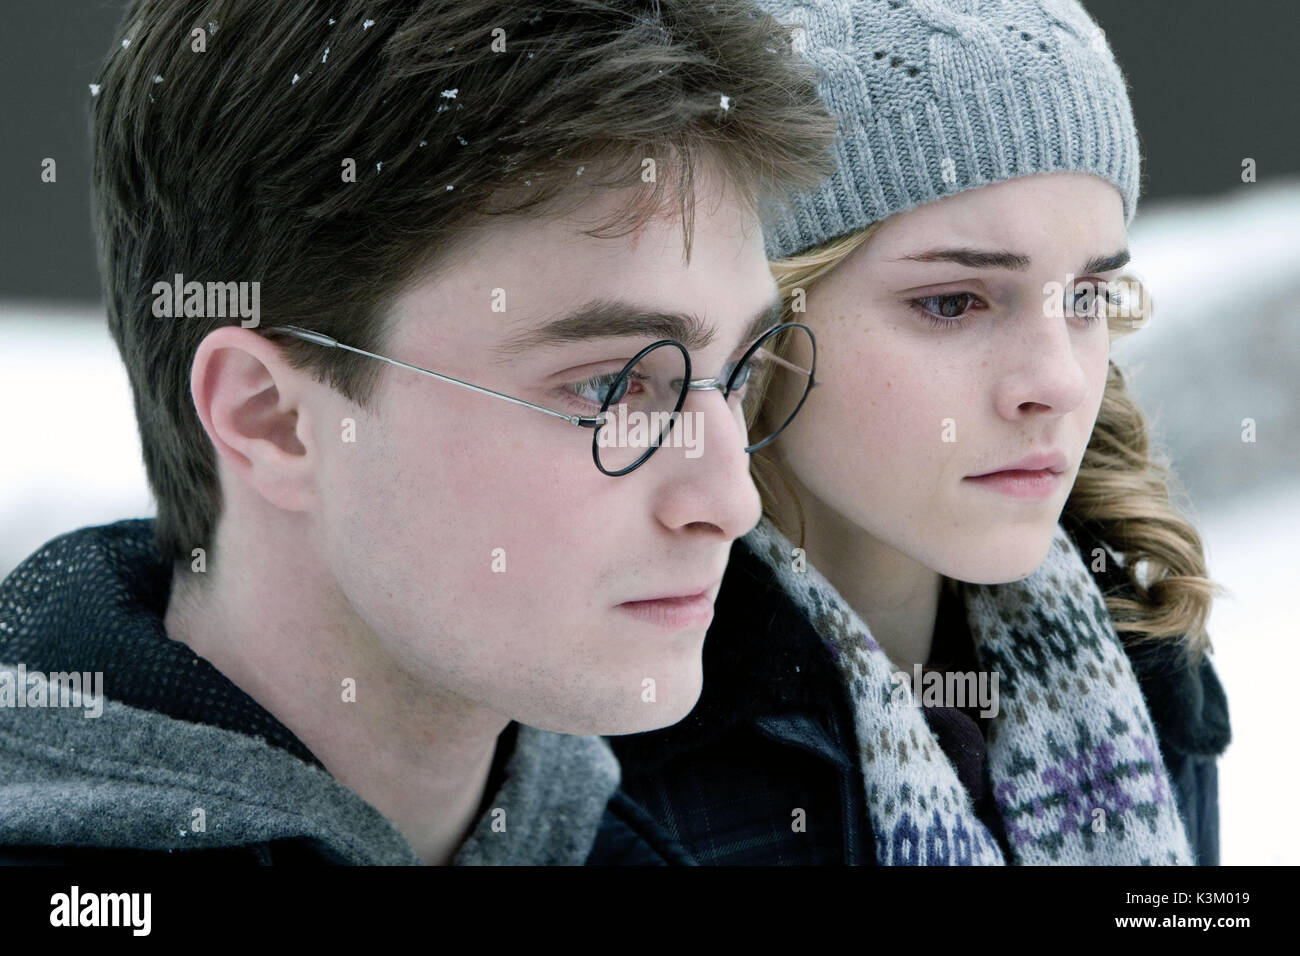 granger dating This is the story of harry potter and hermione granger's love, told from the eyes of their daughter hhr harry potter - rated: t - english - romance/family.